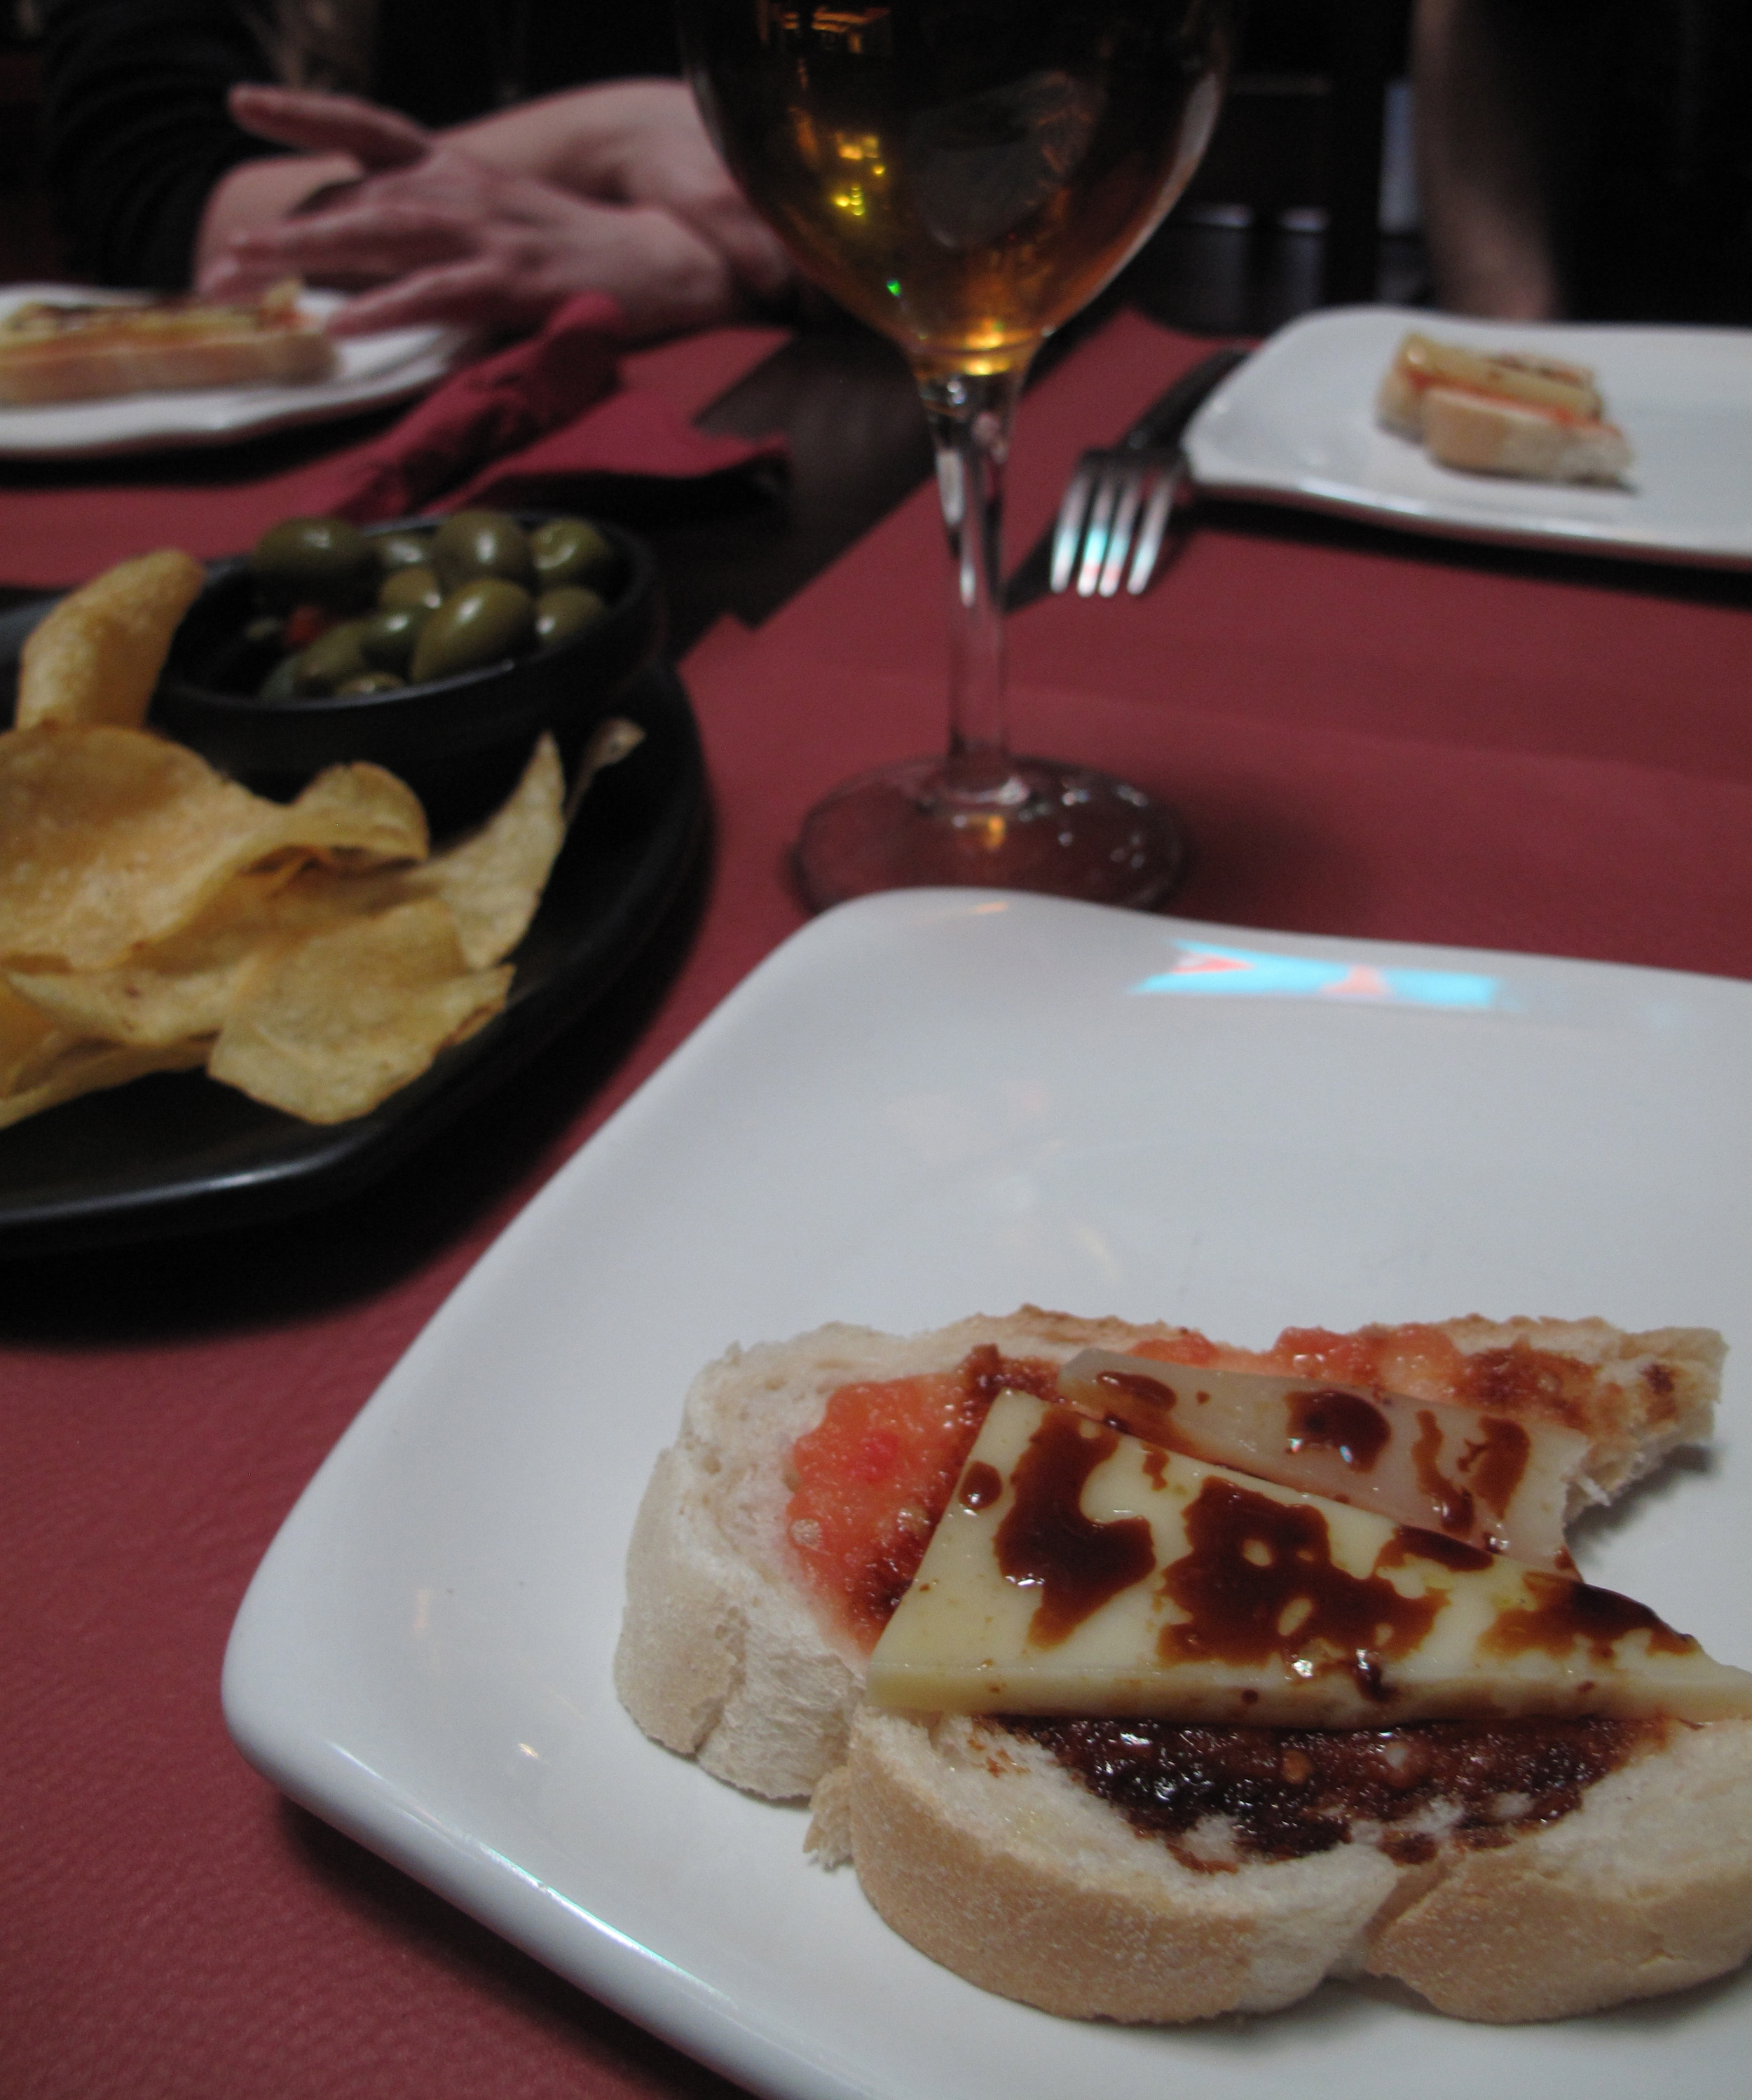 tapas of bread and cheese and olives